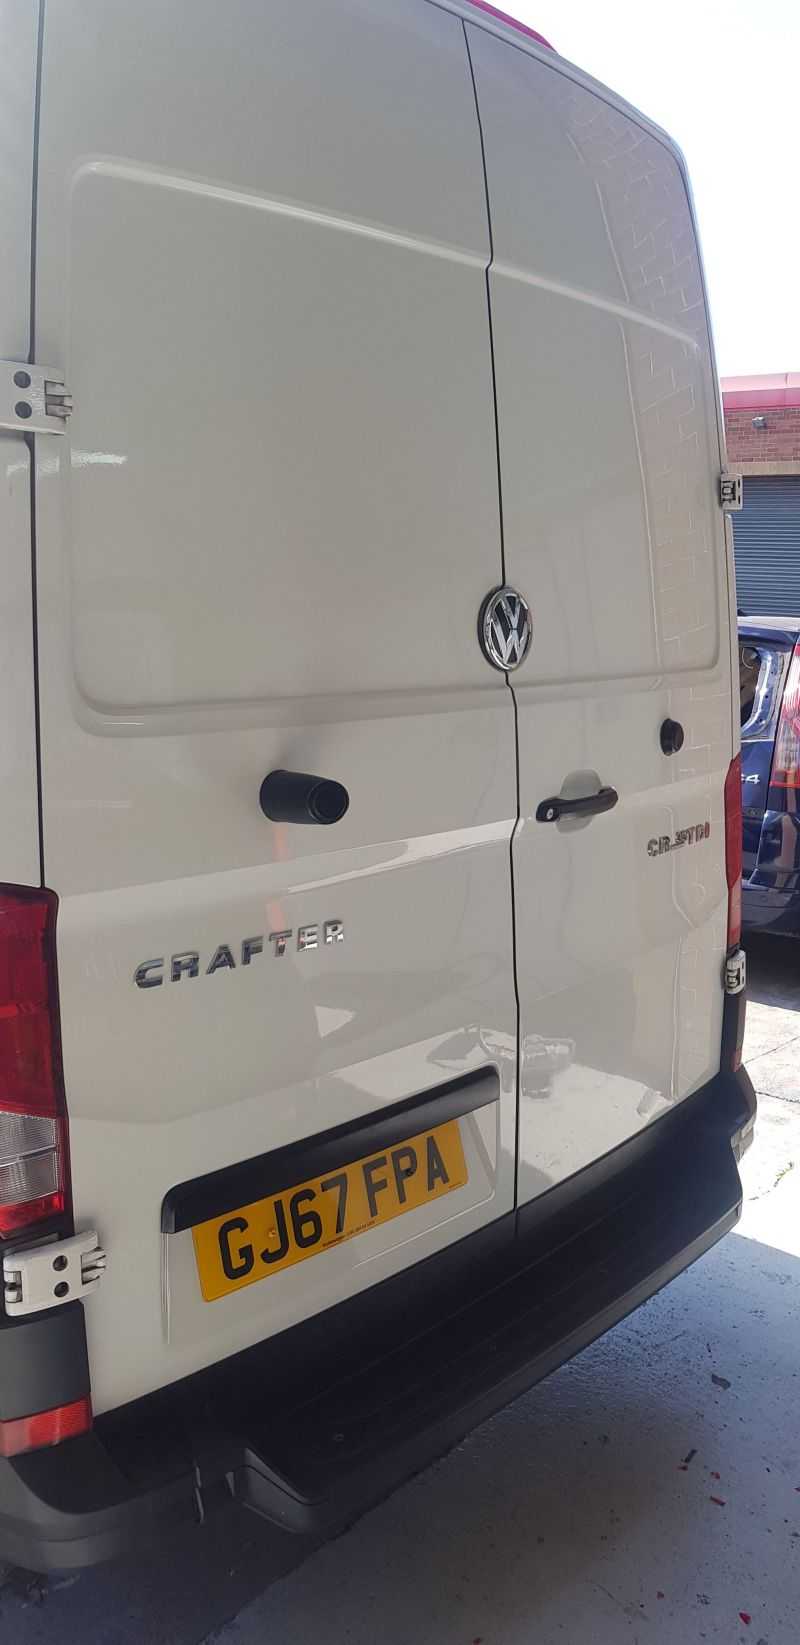 Body repairs commercial vehicle Nottingham.: Swipe To View More Images